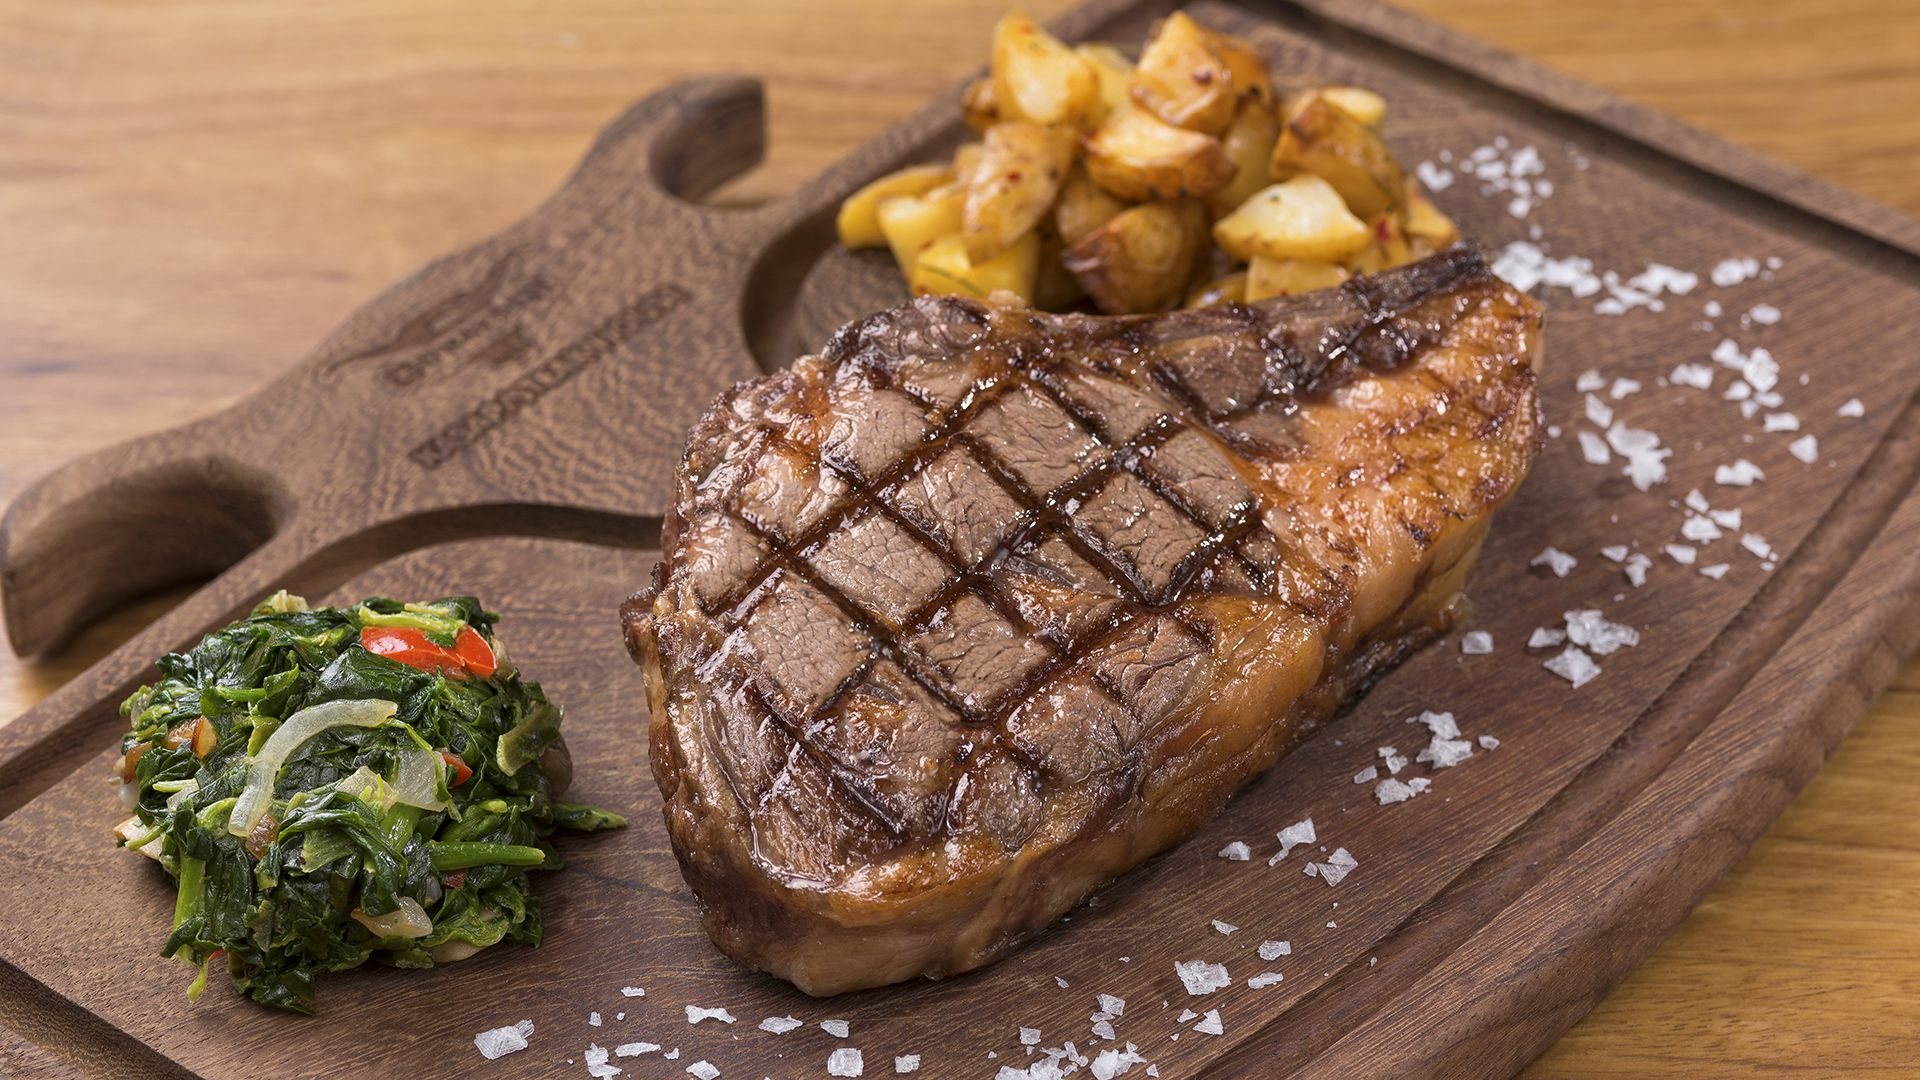 At Gunaydin we love steaks, but our menu is also so much more varied